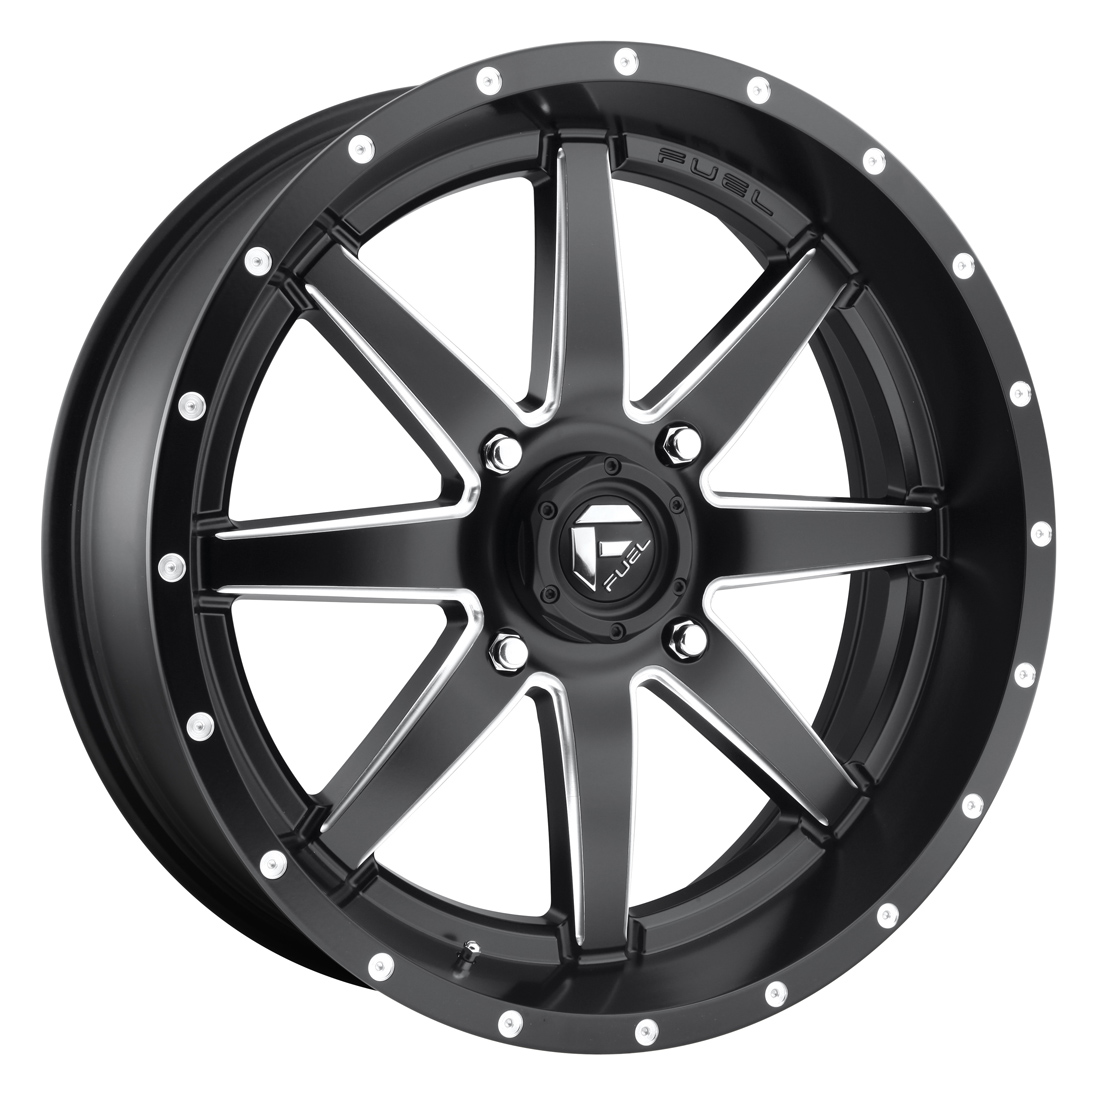 Wheels maverick d538 utv fuel off road utv wheels 20x7 sciox Gallery